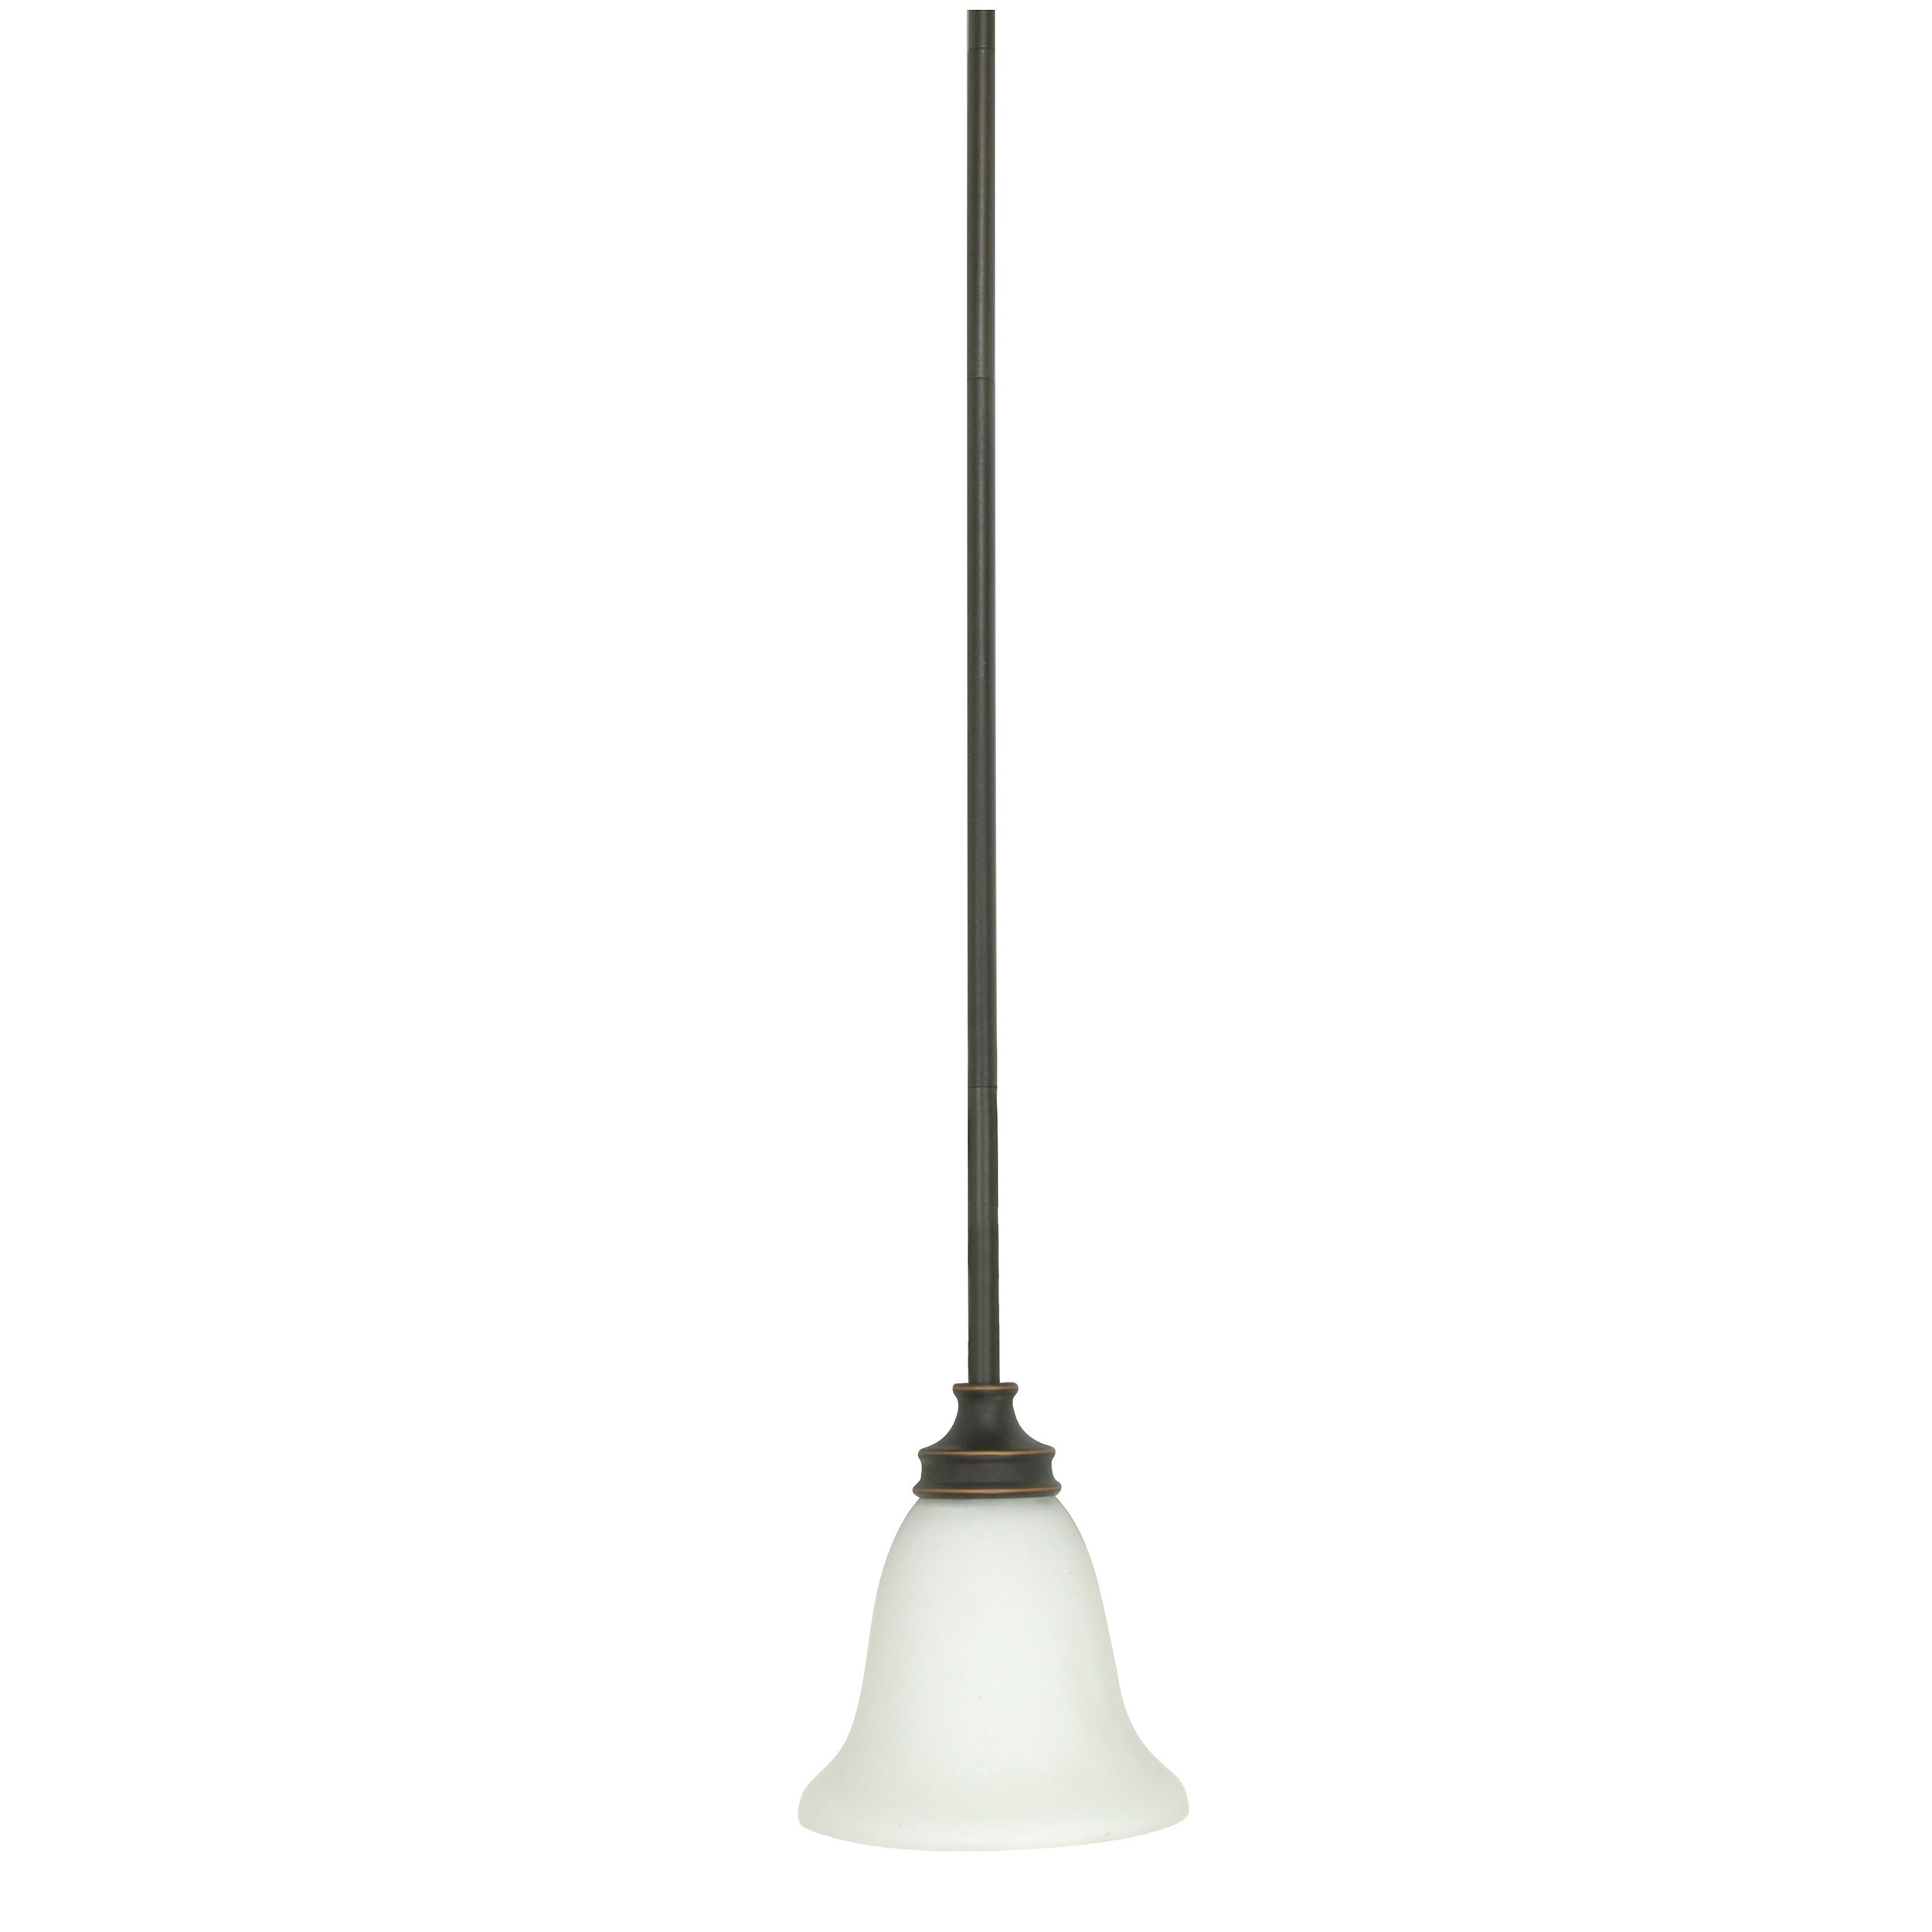 Bistro 1 Light Rustic Bronze w/ Satin White Mini Pendant